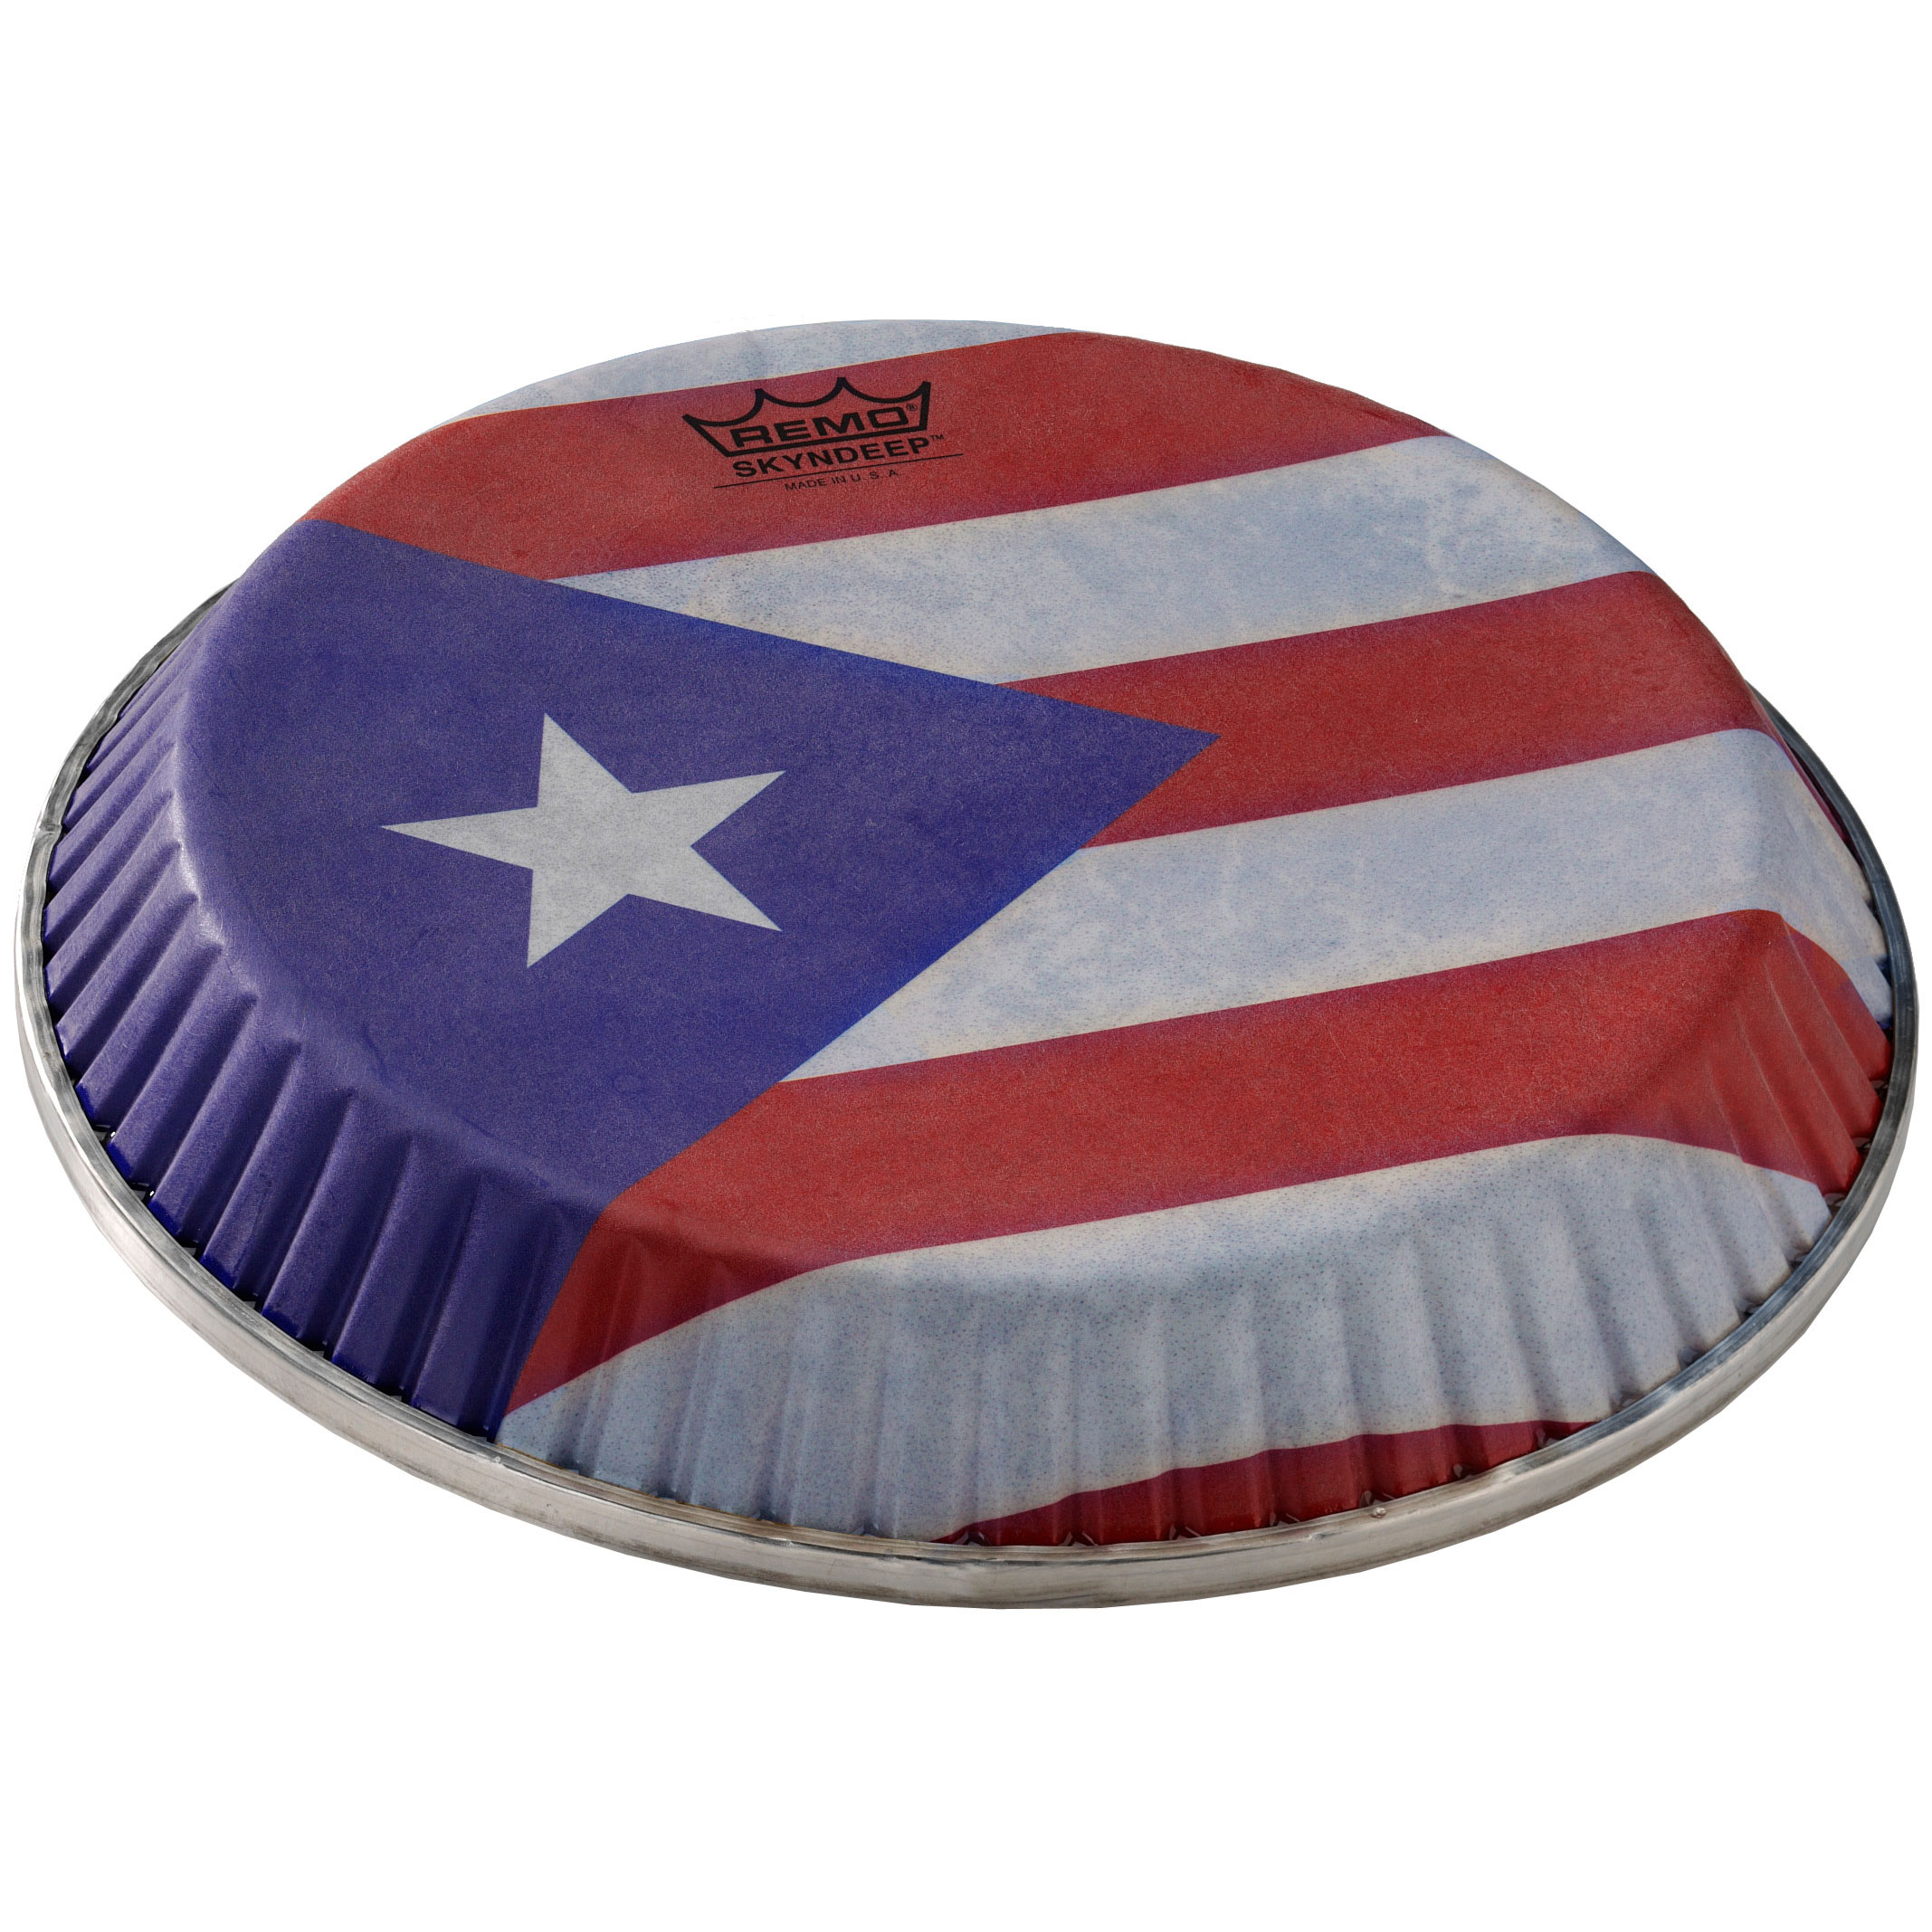 """Remo 11.06"""" Symmetry Skyndeep Conga Drum Head (D2 Collar) with Puerto Rican Flag Graphic"""